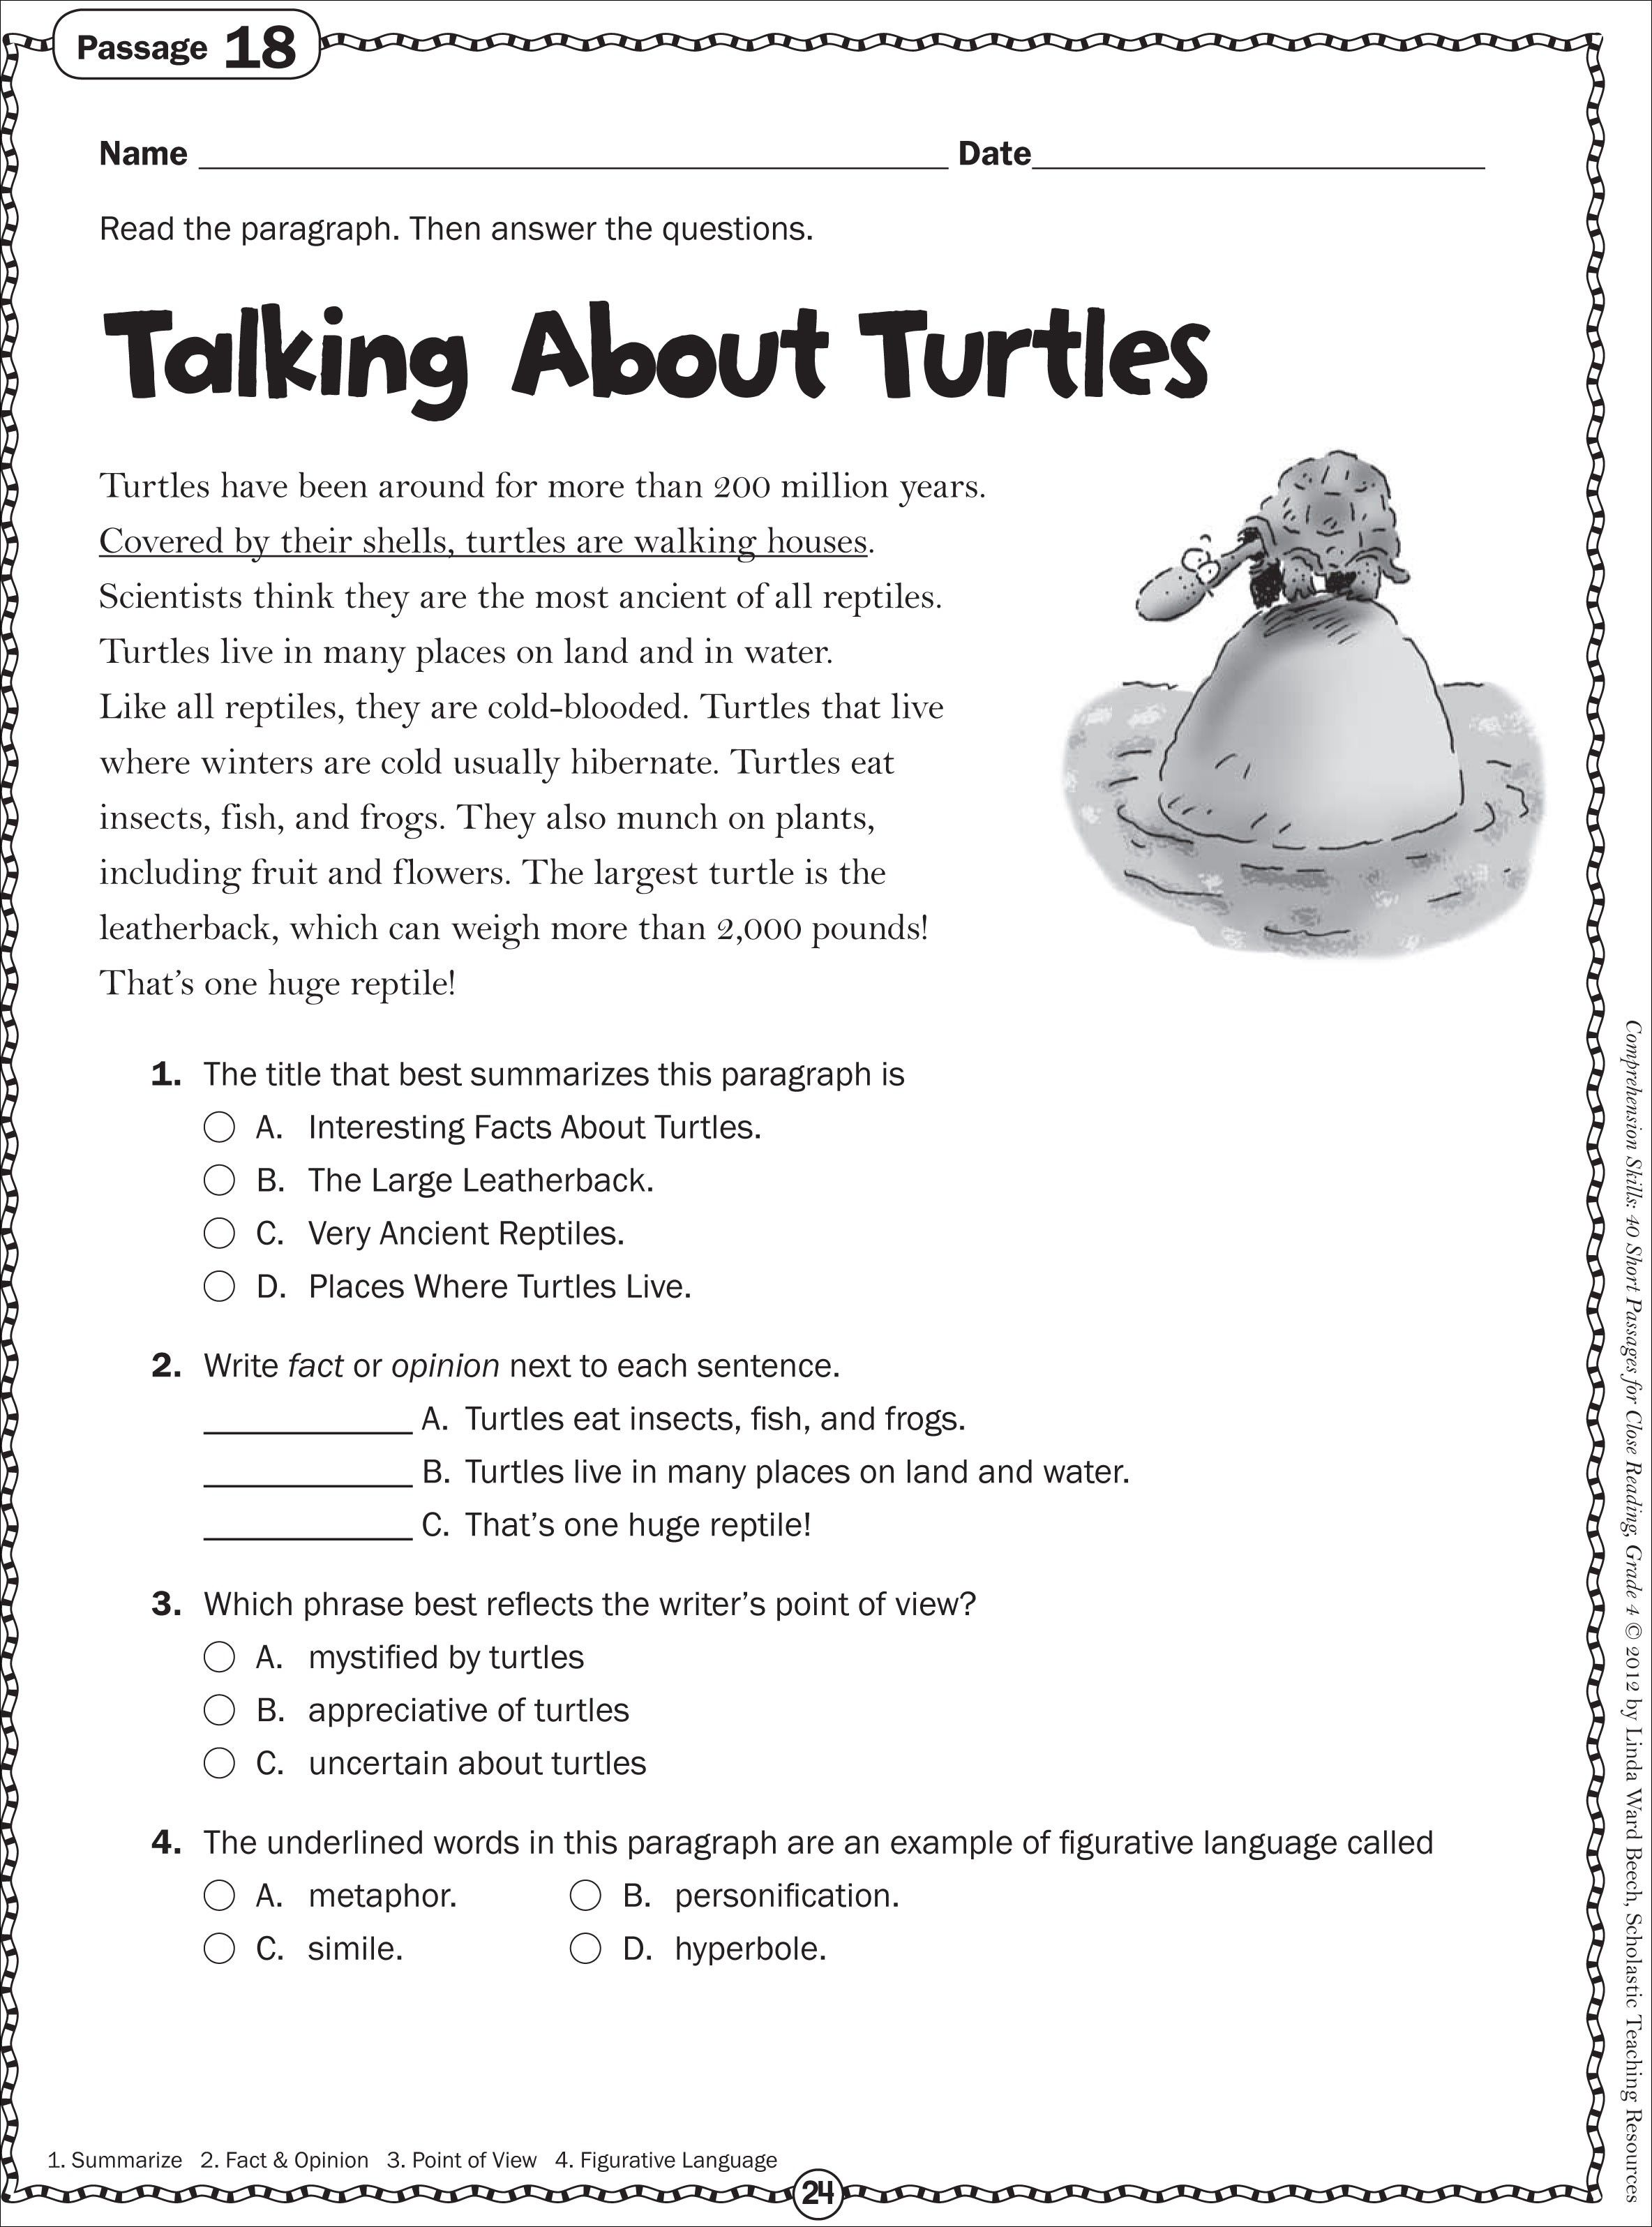 Talking About Turtles Grade 4 Close Reading Passage Free Reading Comprehension Worksheets Reading Comprehension Worksheets Third Grade Reading Worksheets